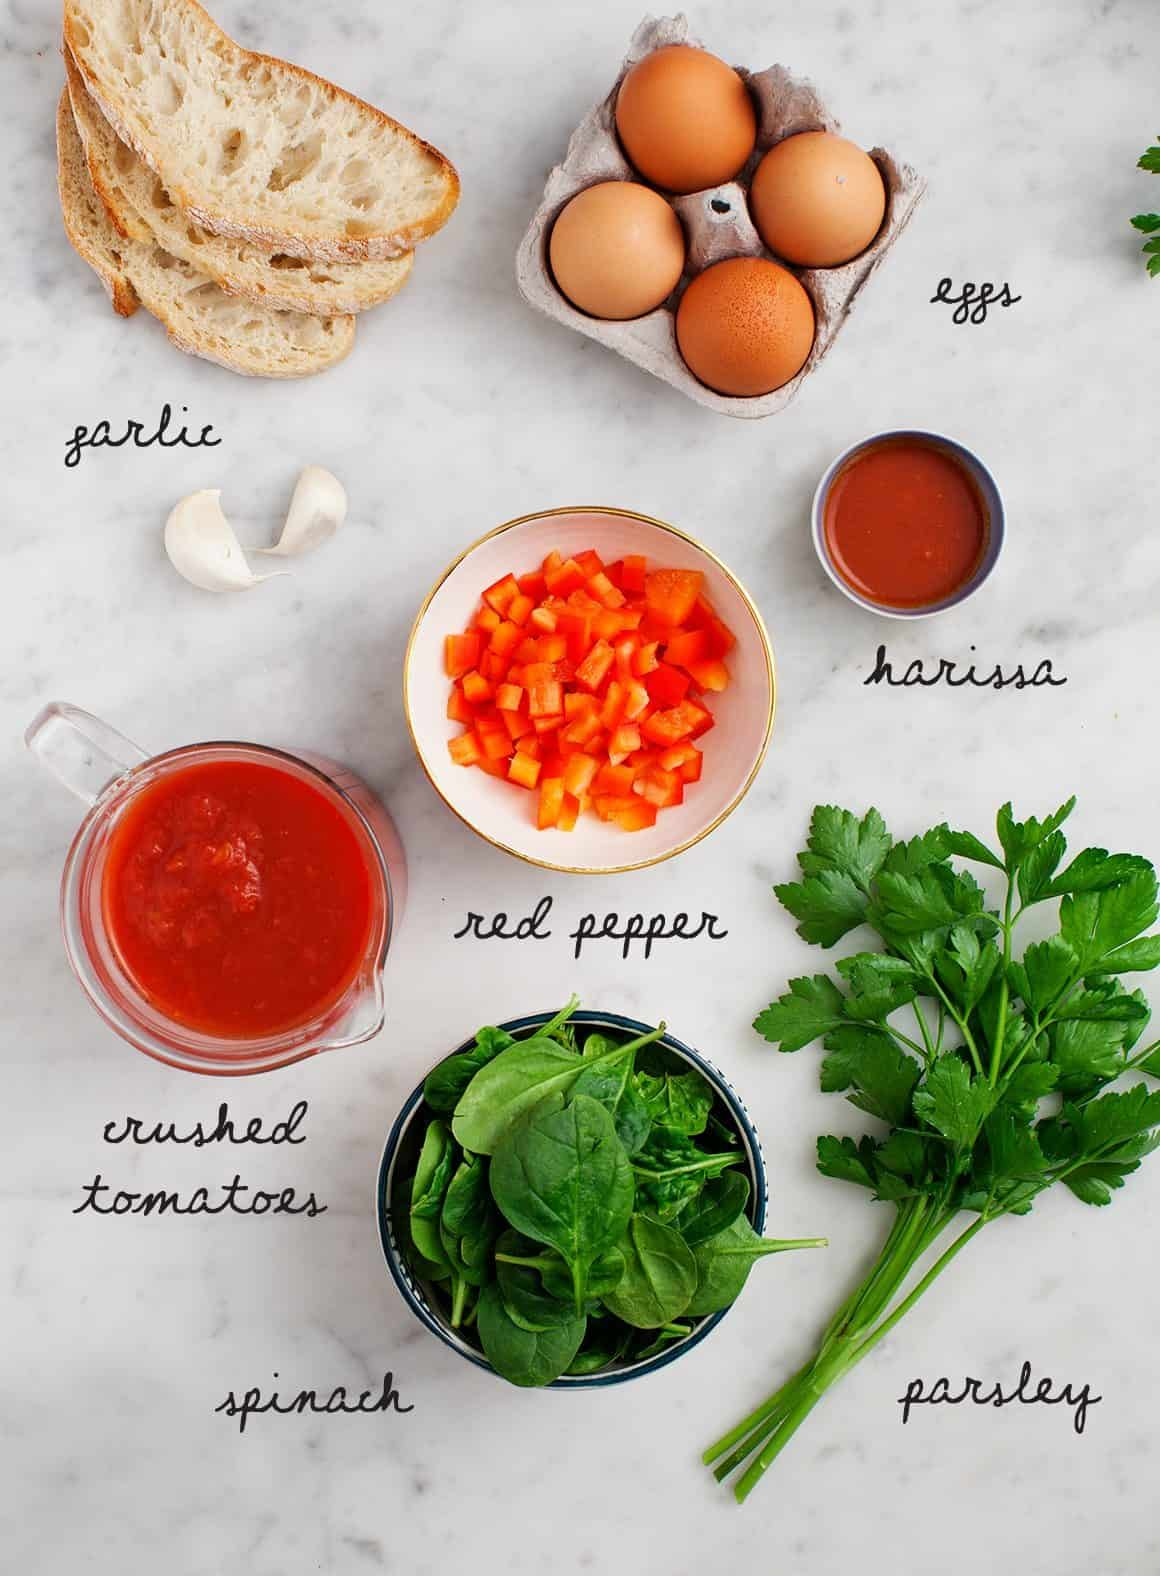 Shakshuka Recipe ingredients